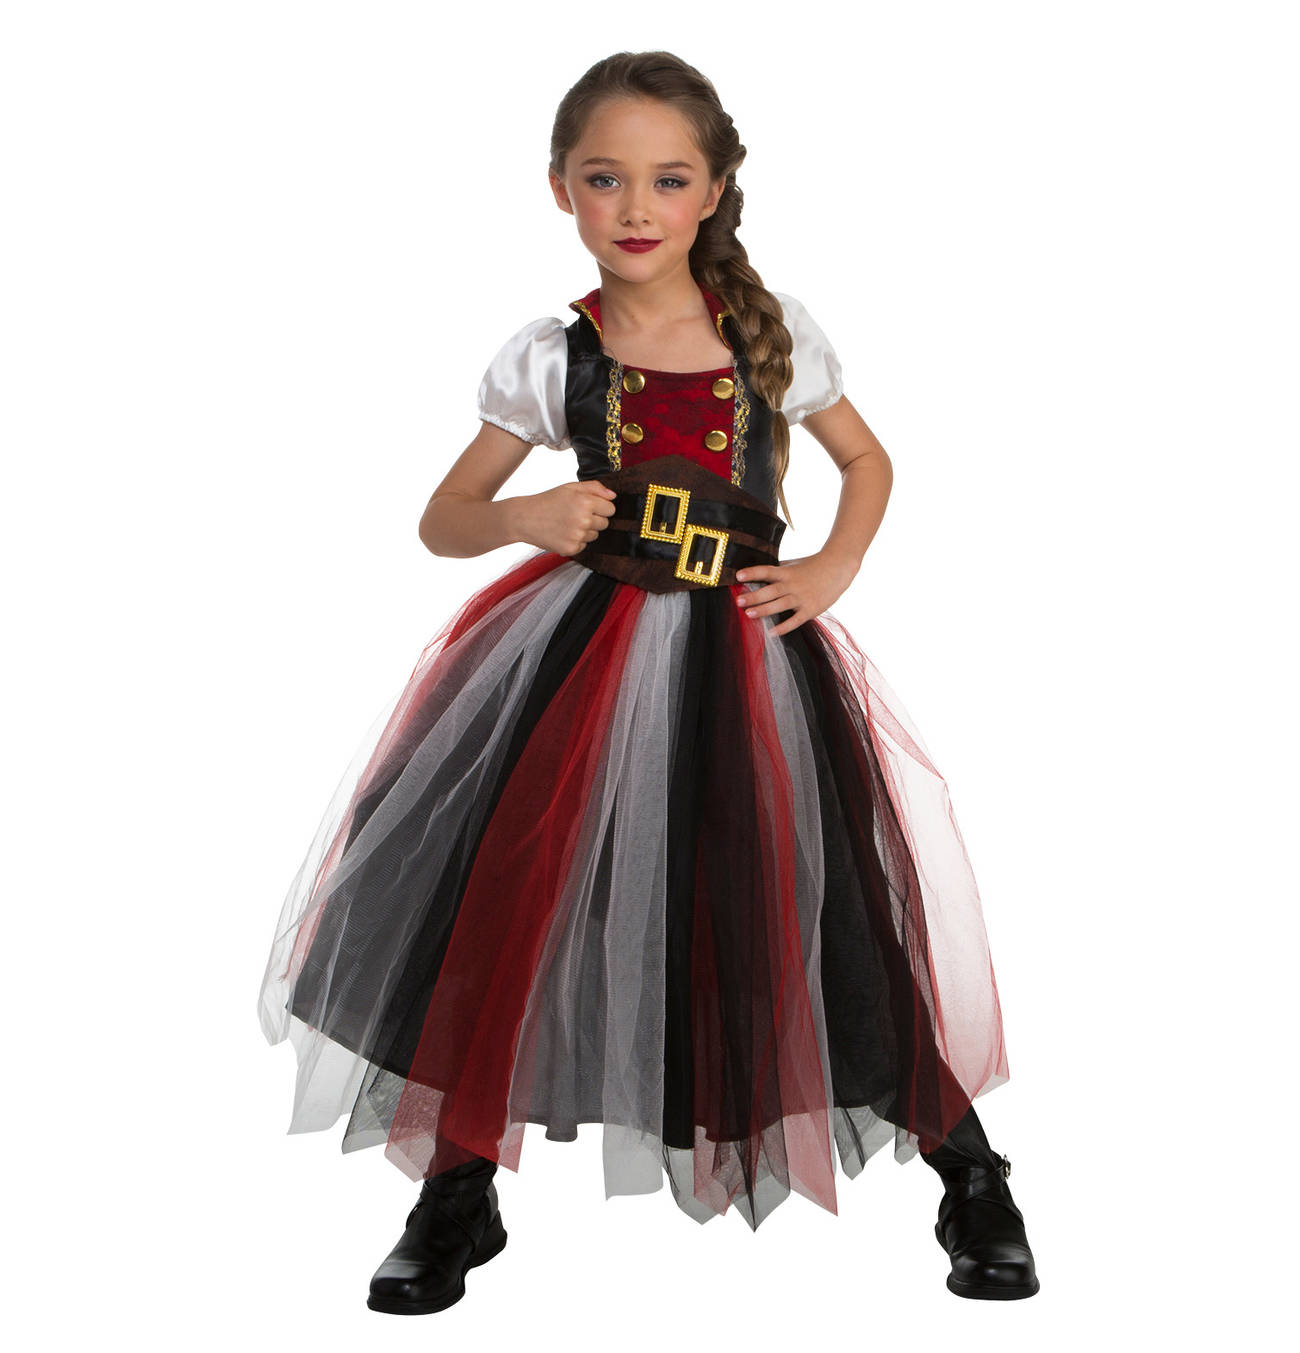 Halloween Kostüme Damen Kaufhof Kostüm Piratin Kinder Products In 2019 Kostüm Piratin